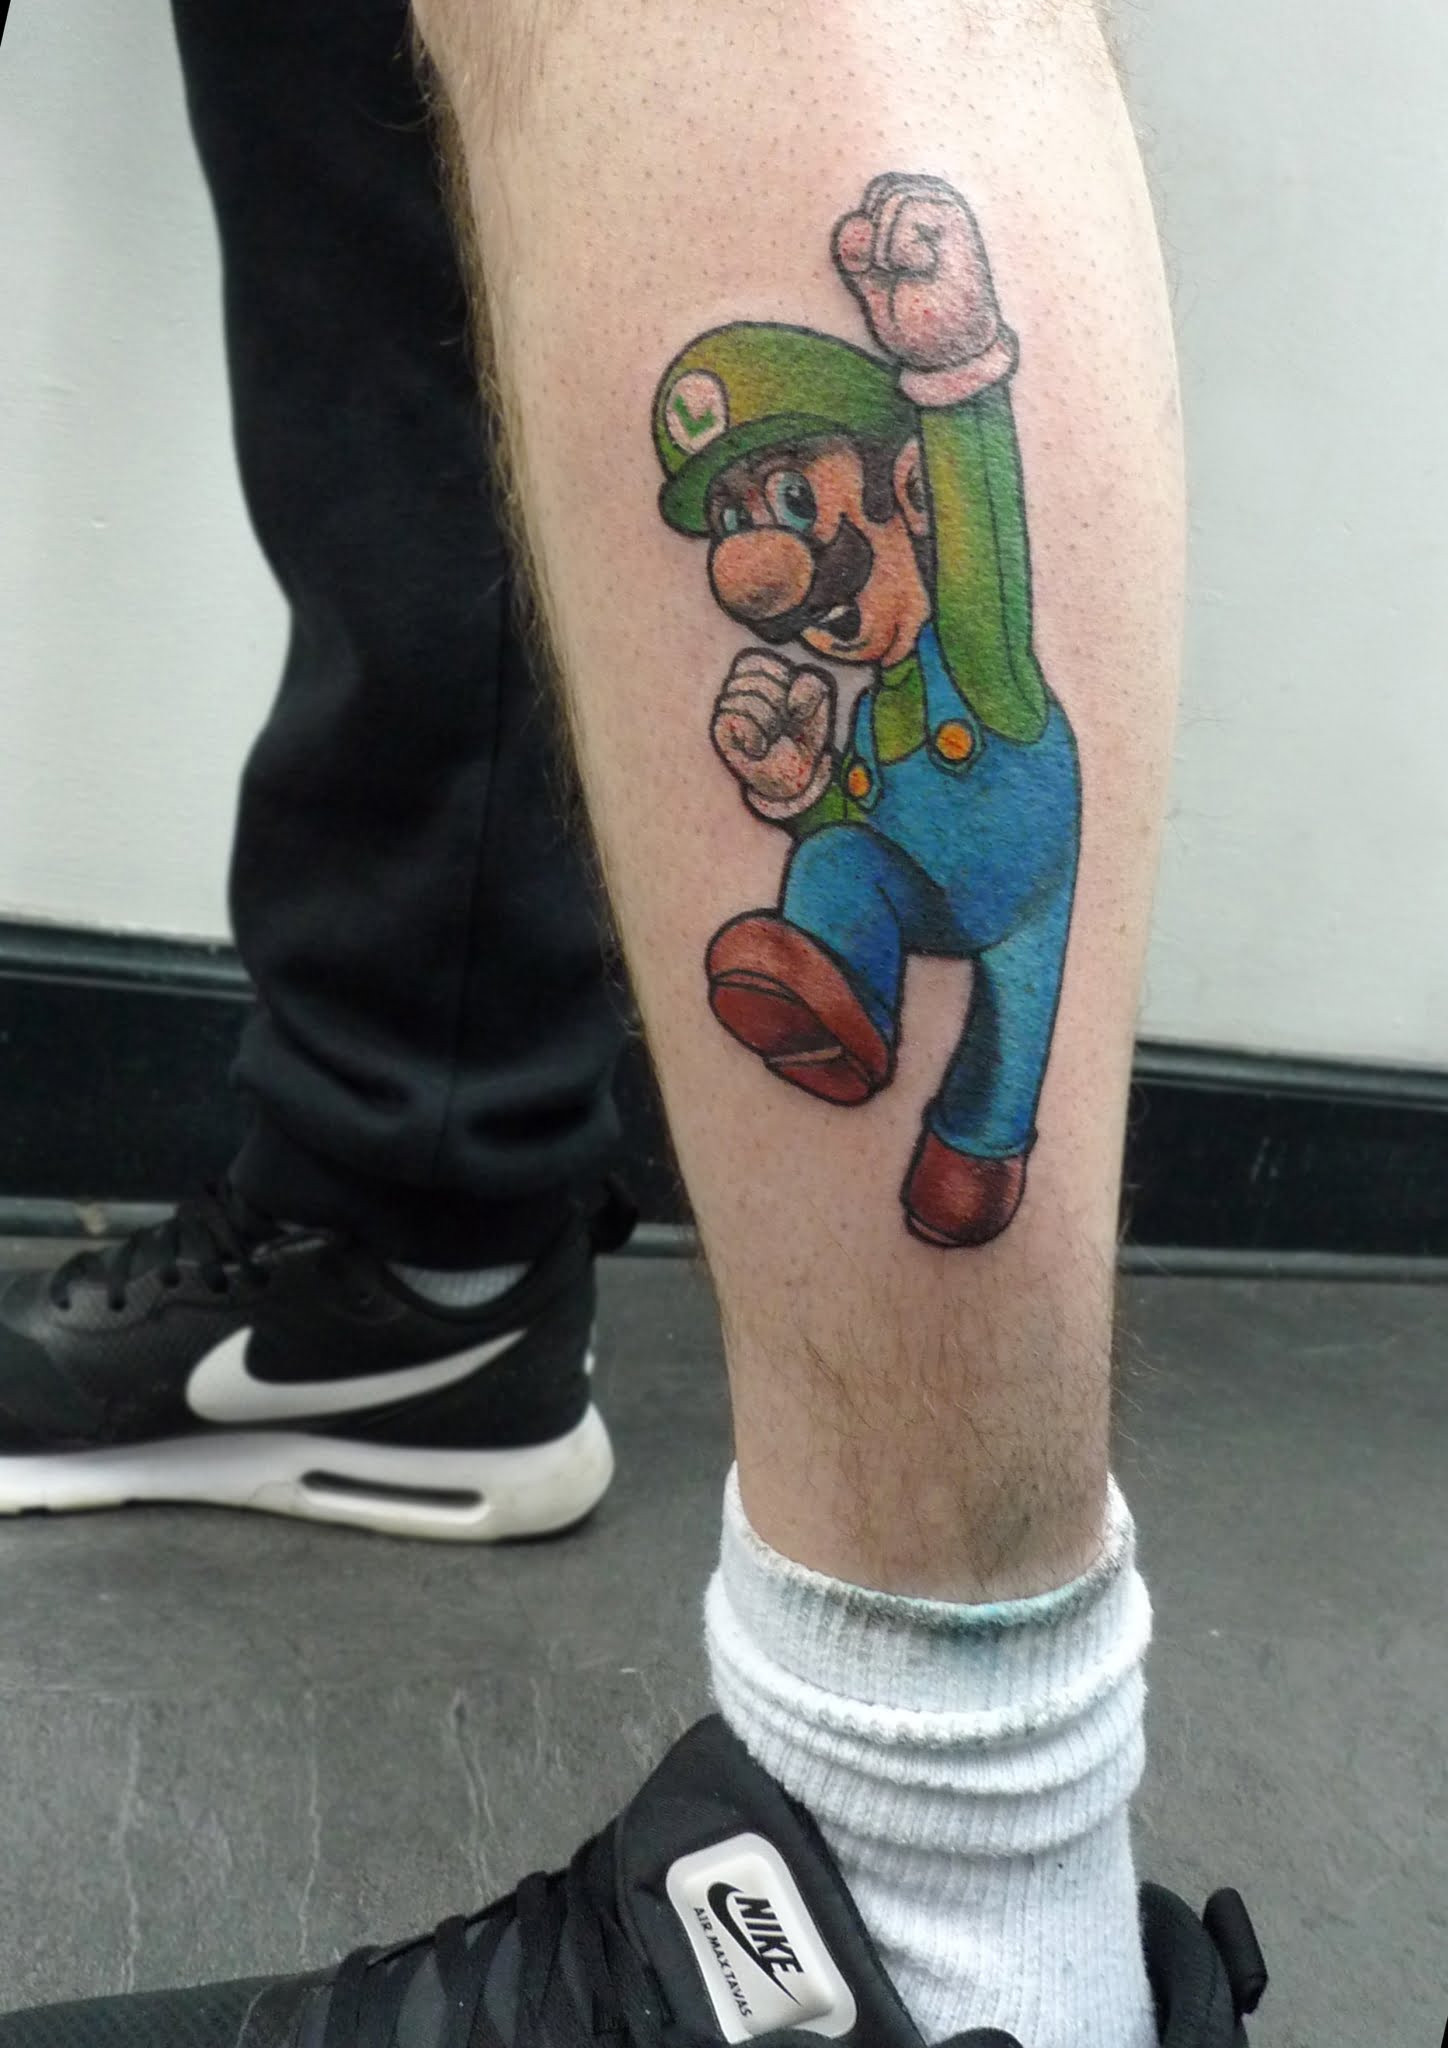 Mario tattoo by Max